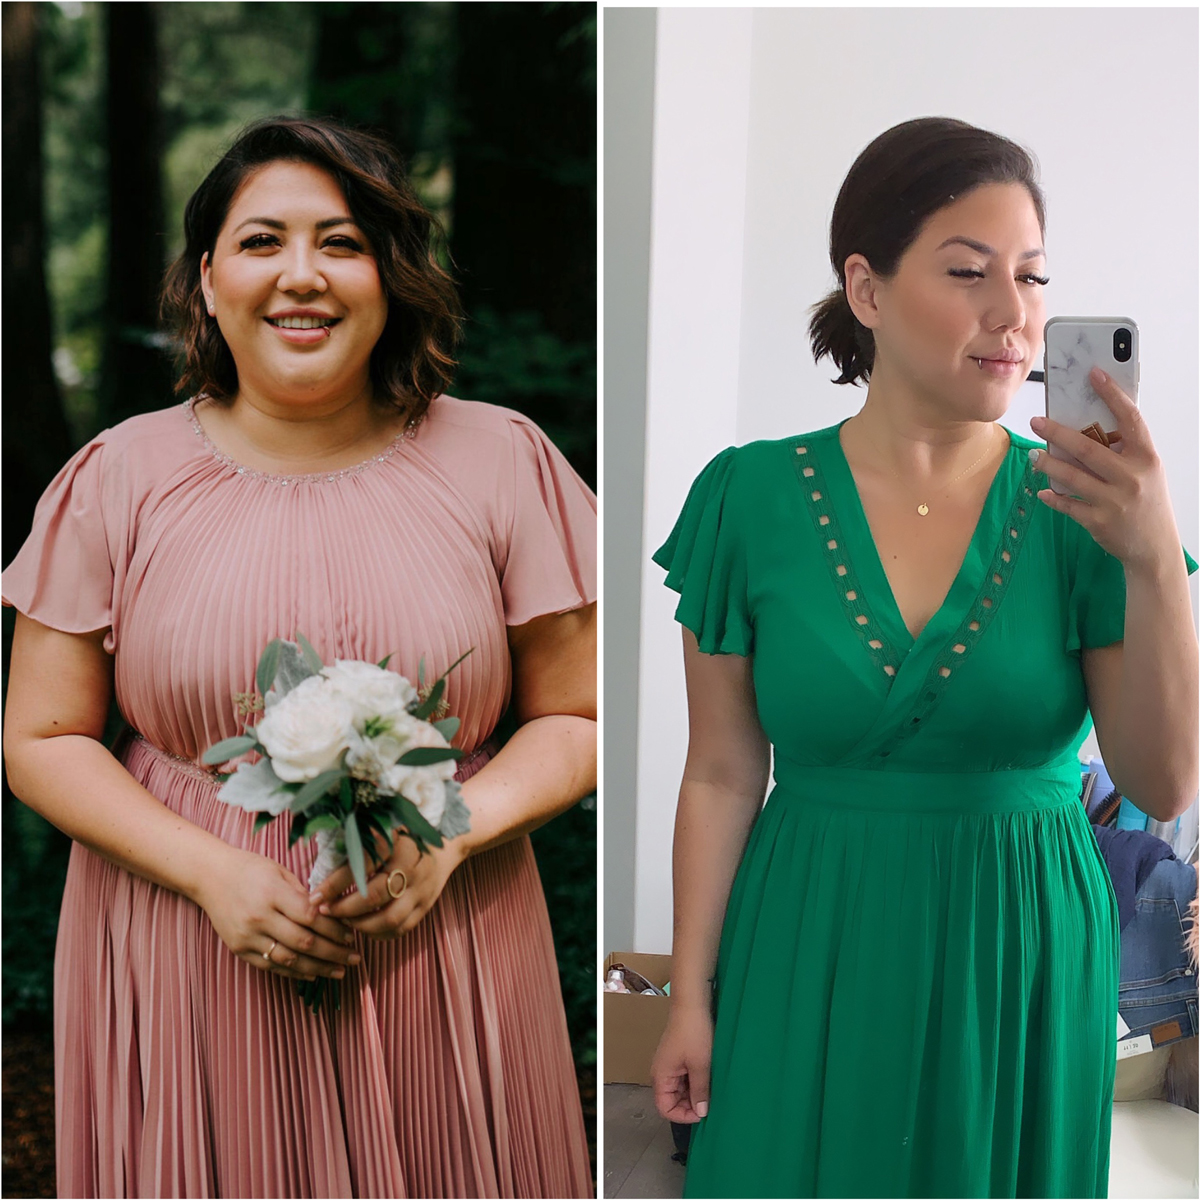 Kaitiln Hargreaves Weight Loss Journey